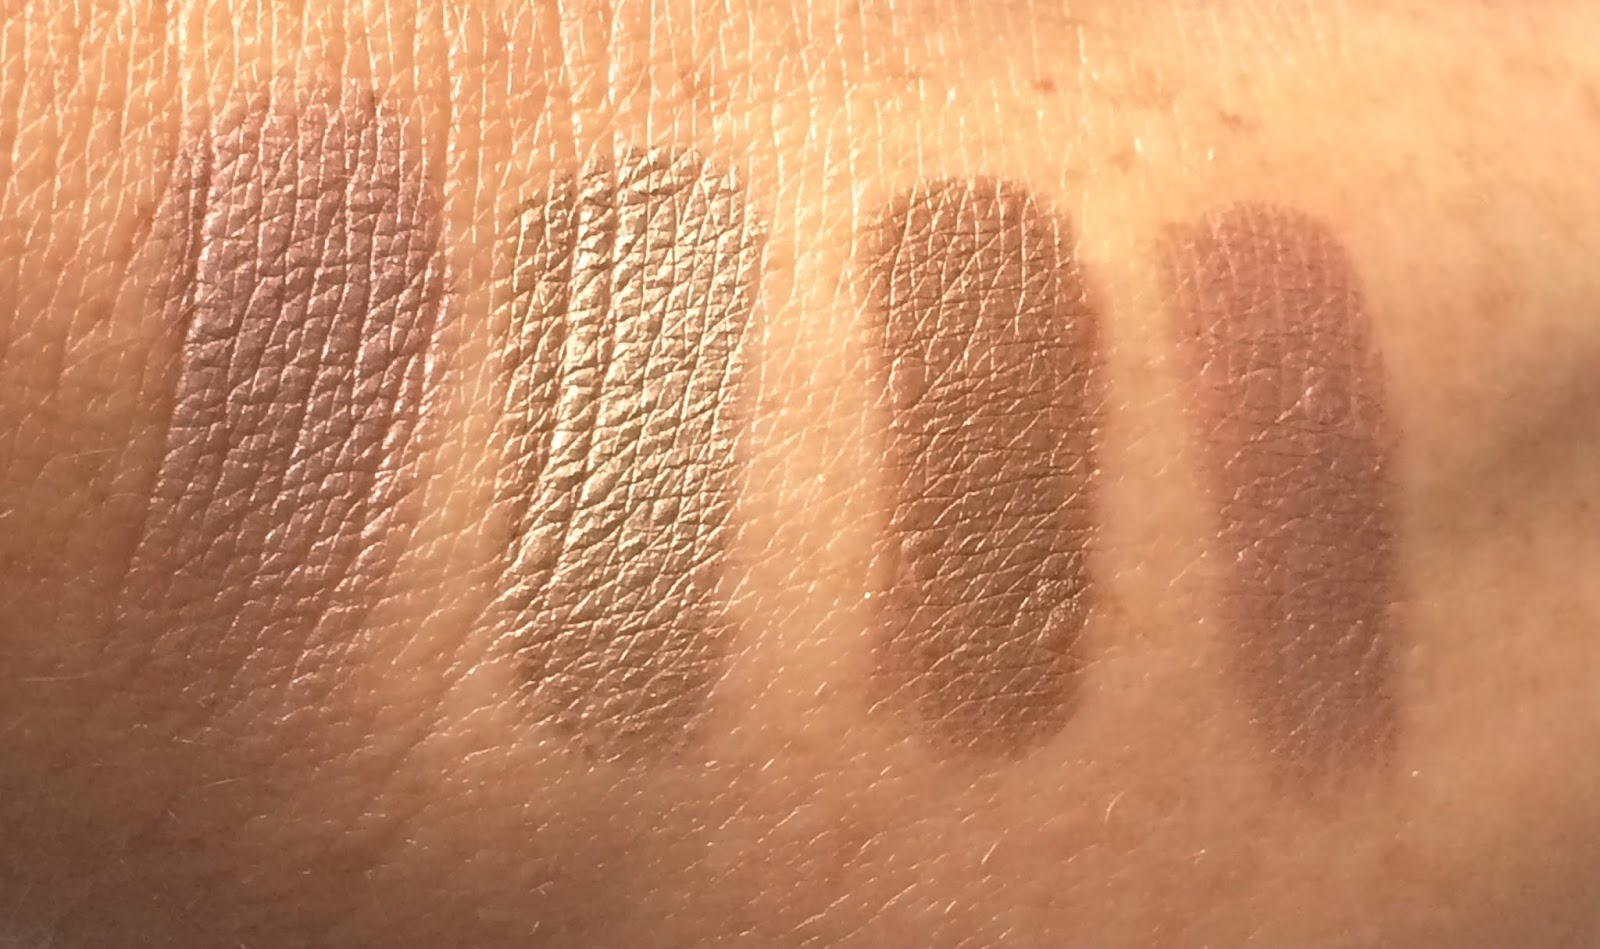 Anastasia Beverly Hills Single Eyeshadow Custom, Chiffon, Brownie, Chocolate Crumble swatches